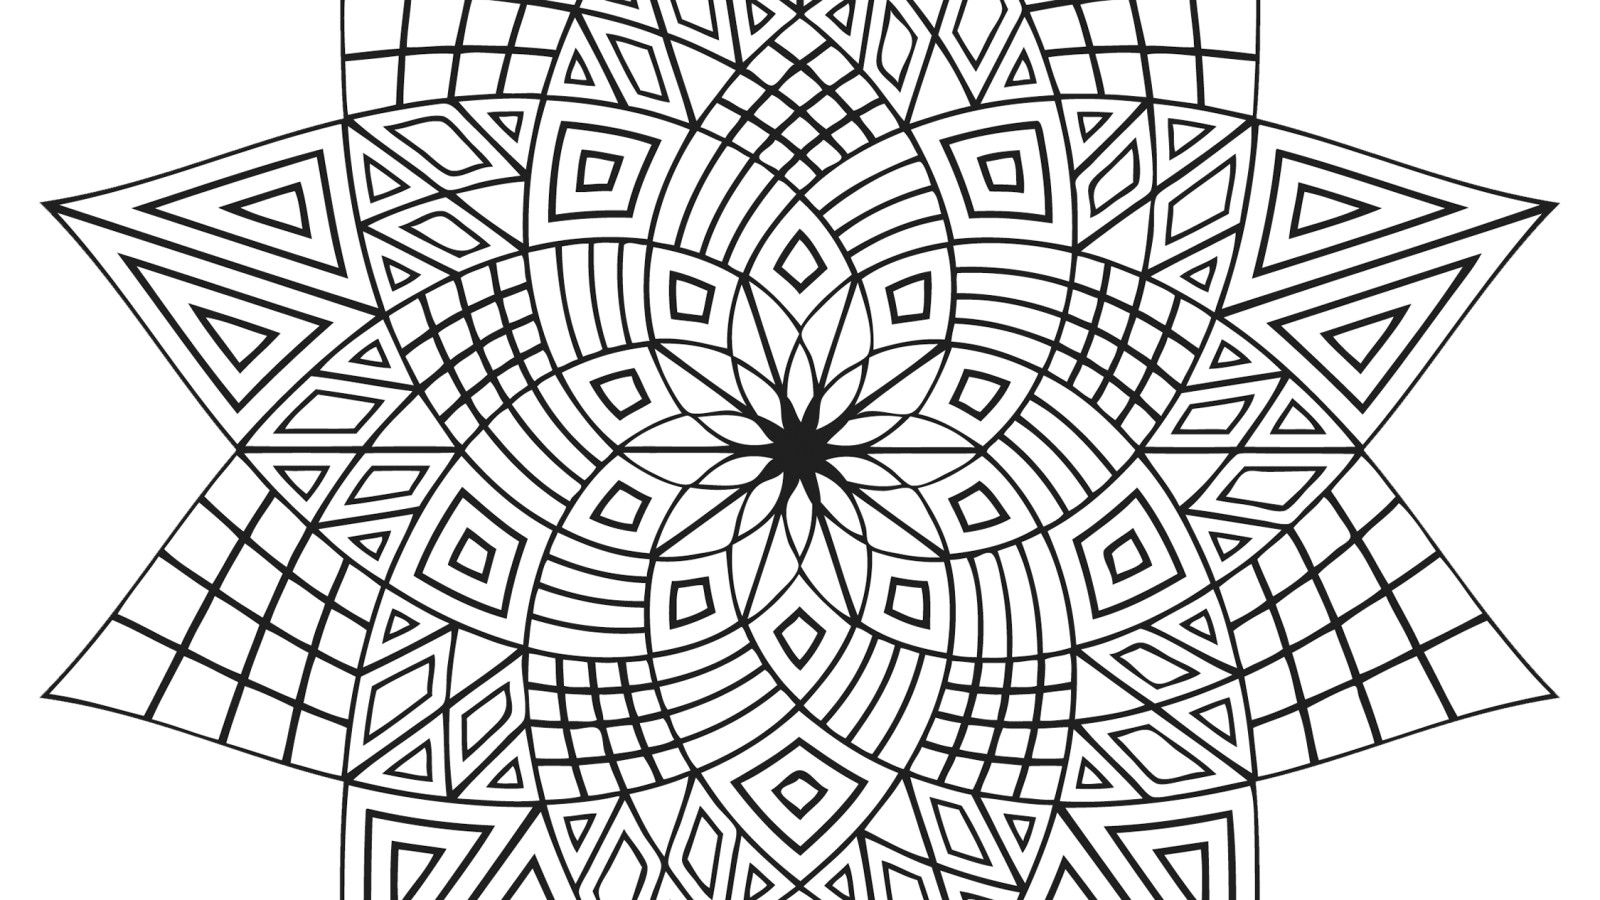 pattern and design coloring book volume 1 free kids coloring book ...